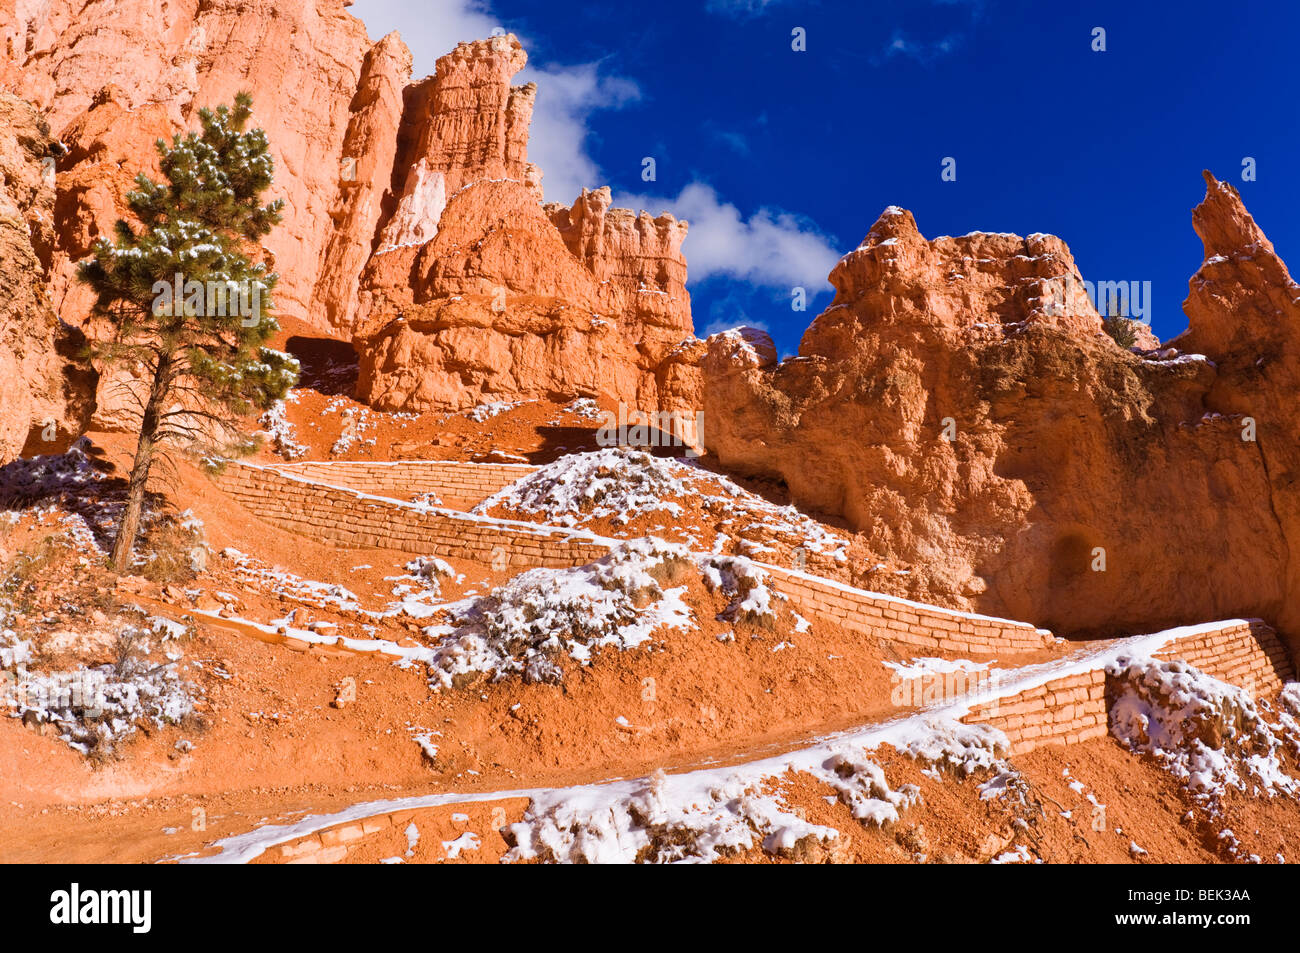 directions to the trail and rock formations Trails and maps harry wrede 2018-02-07t17:51:08+00:00 miles of trails to explore begin at the north garden parking lot for easy, paved foot paths through the heart of the red rock formations from the south garden parking lot there are approximately 5 miles of trails for mountain biking and hiking.